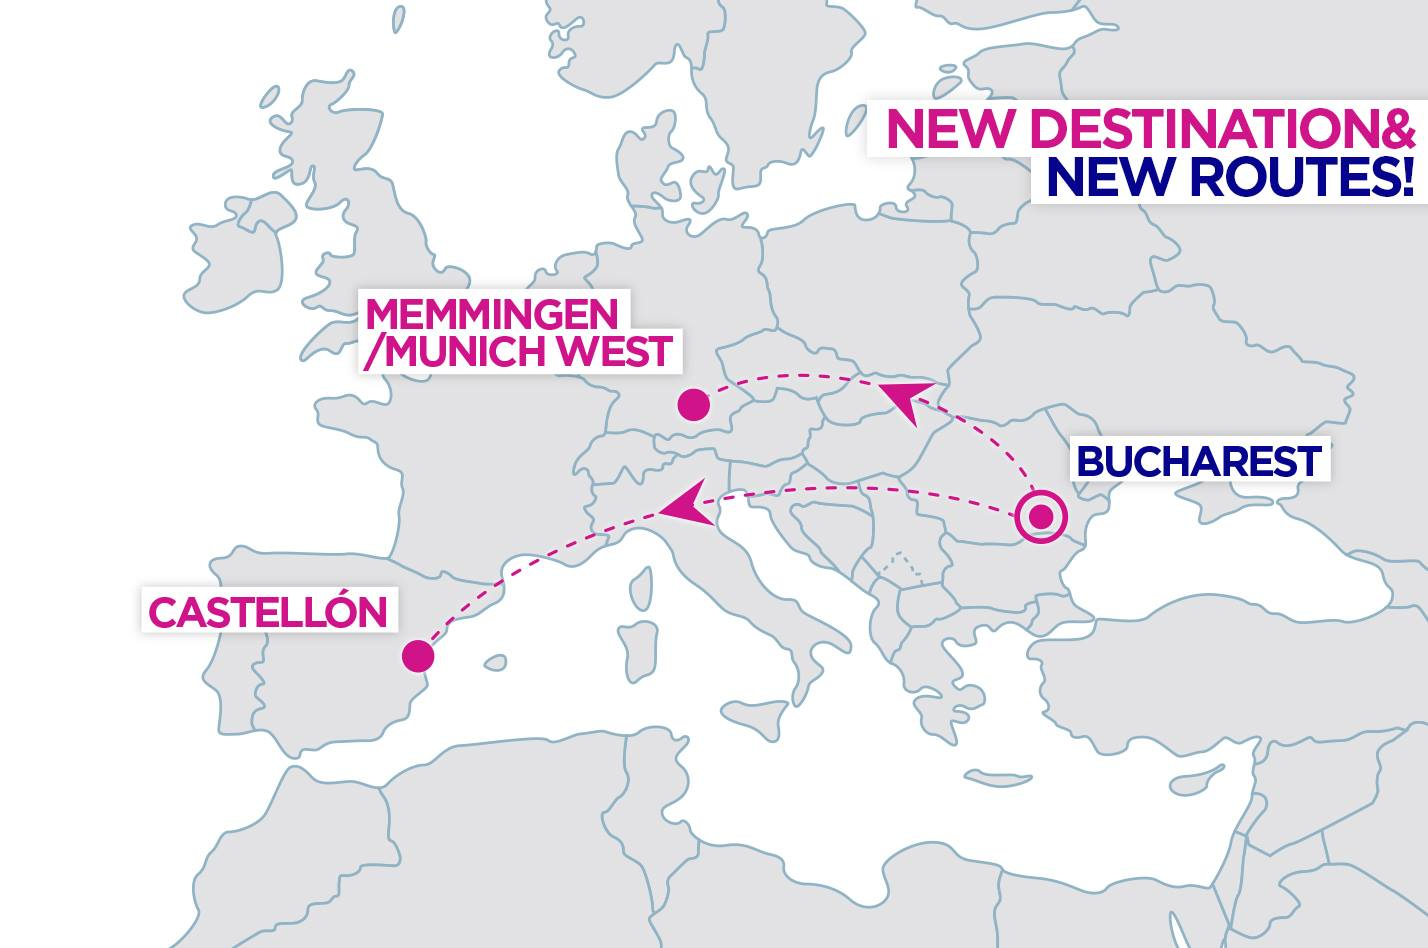 2 New WizzAir routes from Bucharest, Romania - TravelFree